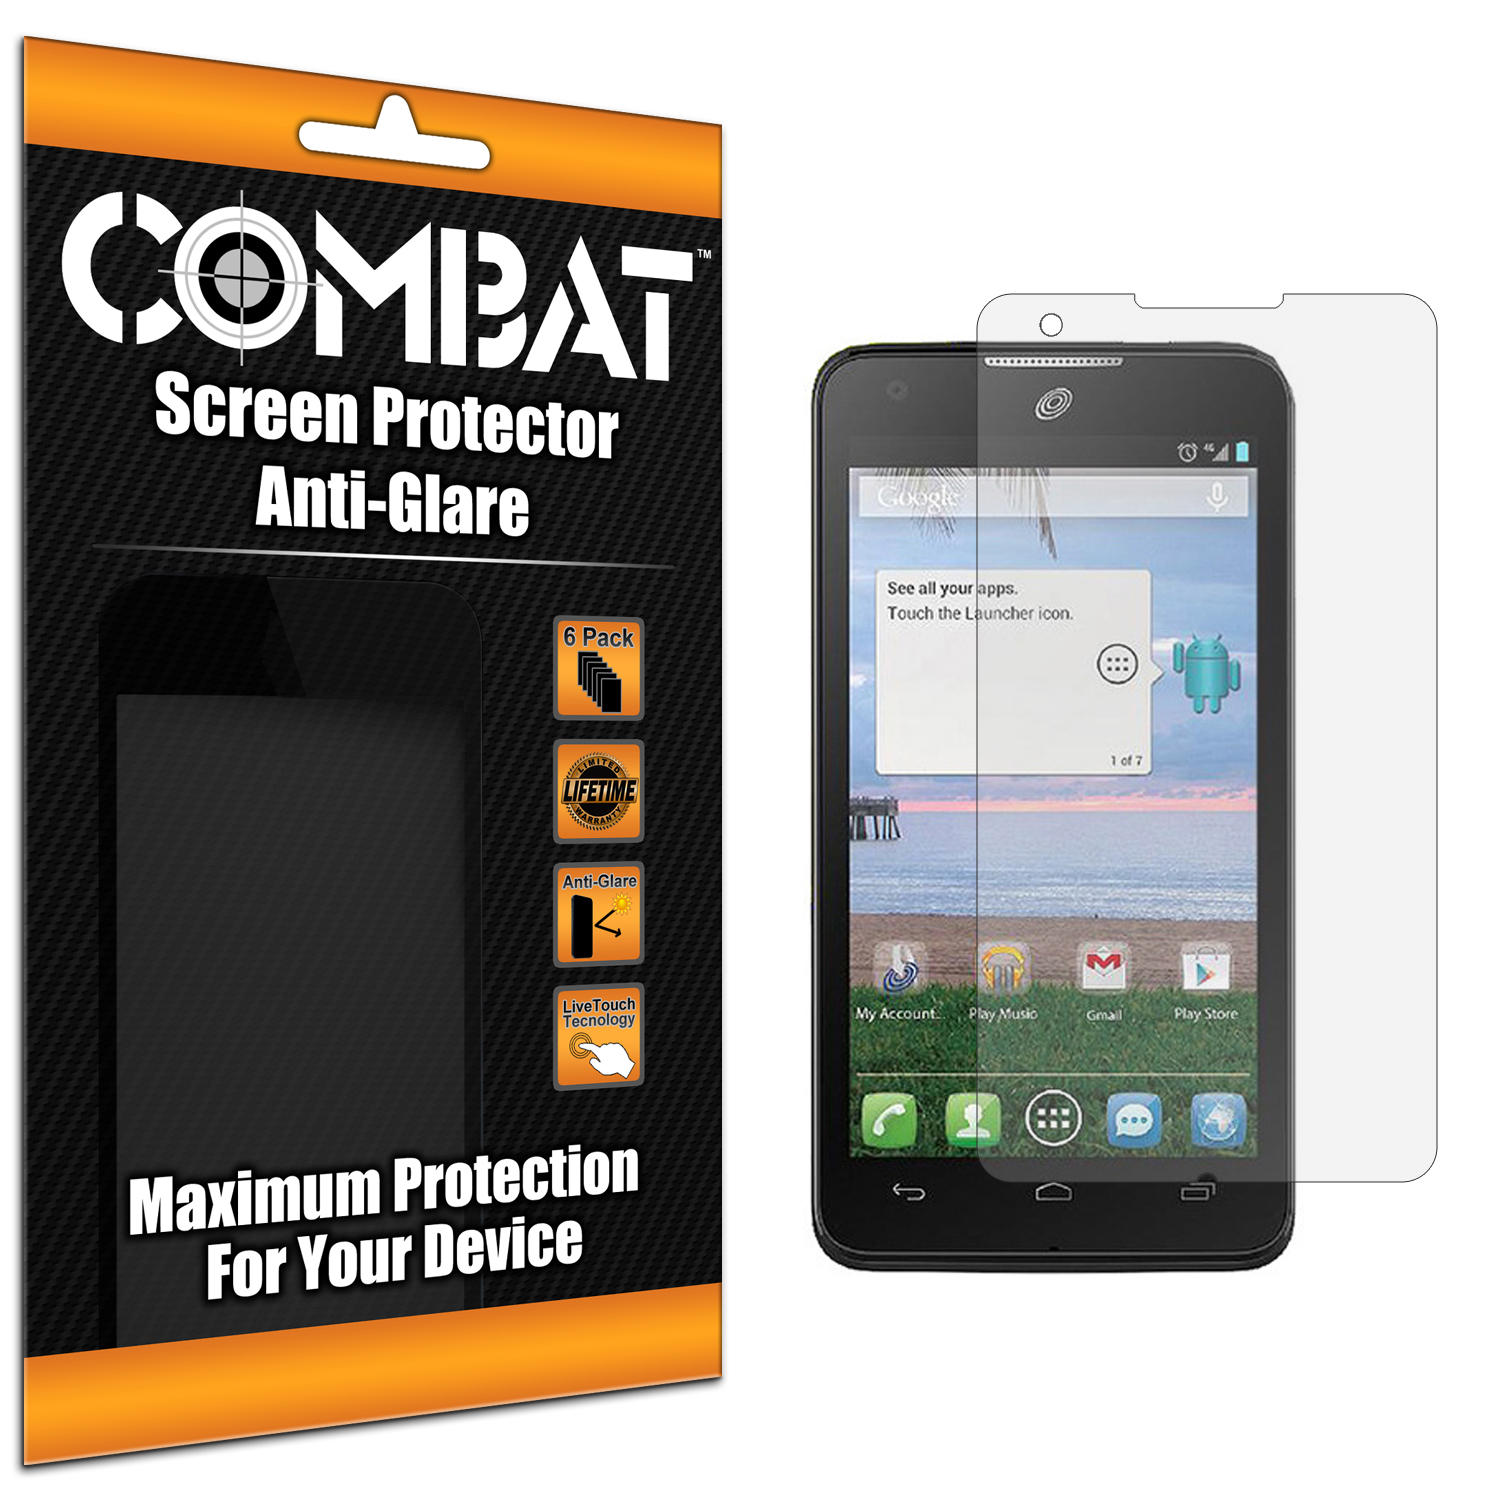 Alcatel One Touch Sonic A851L Combat 6 Pack Anti-Glare Matte Screen Protector